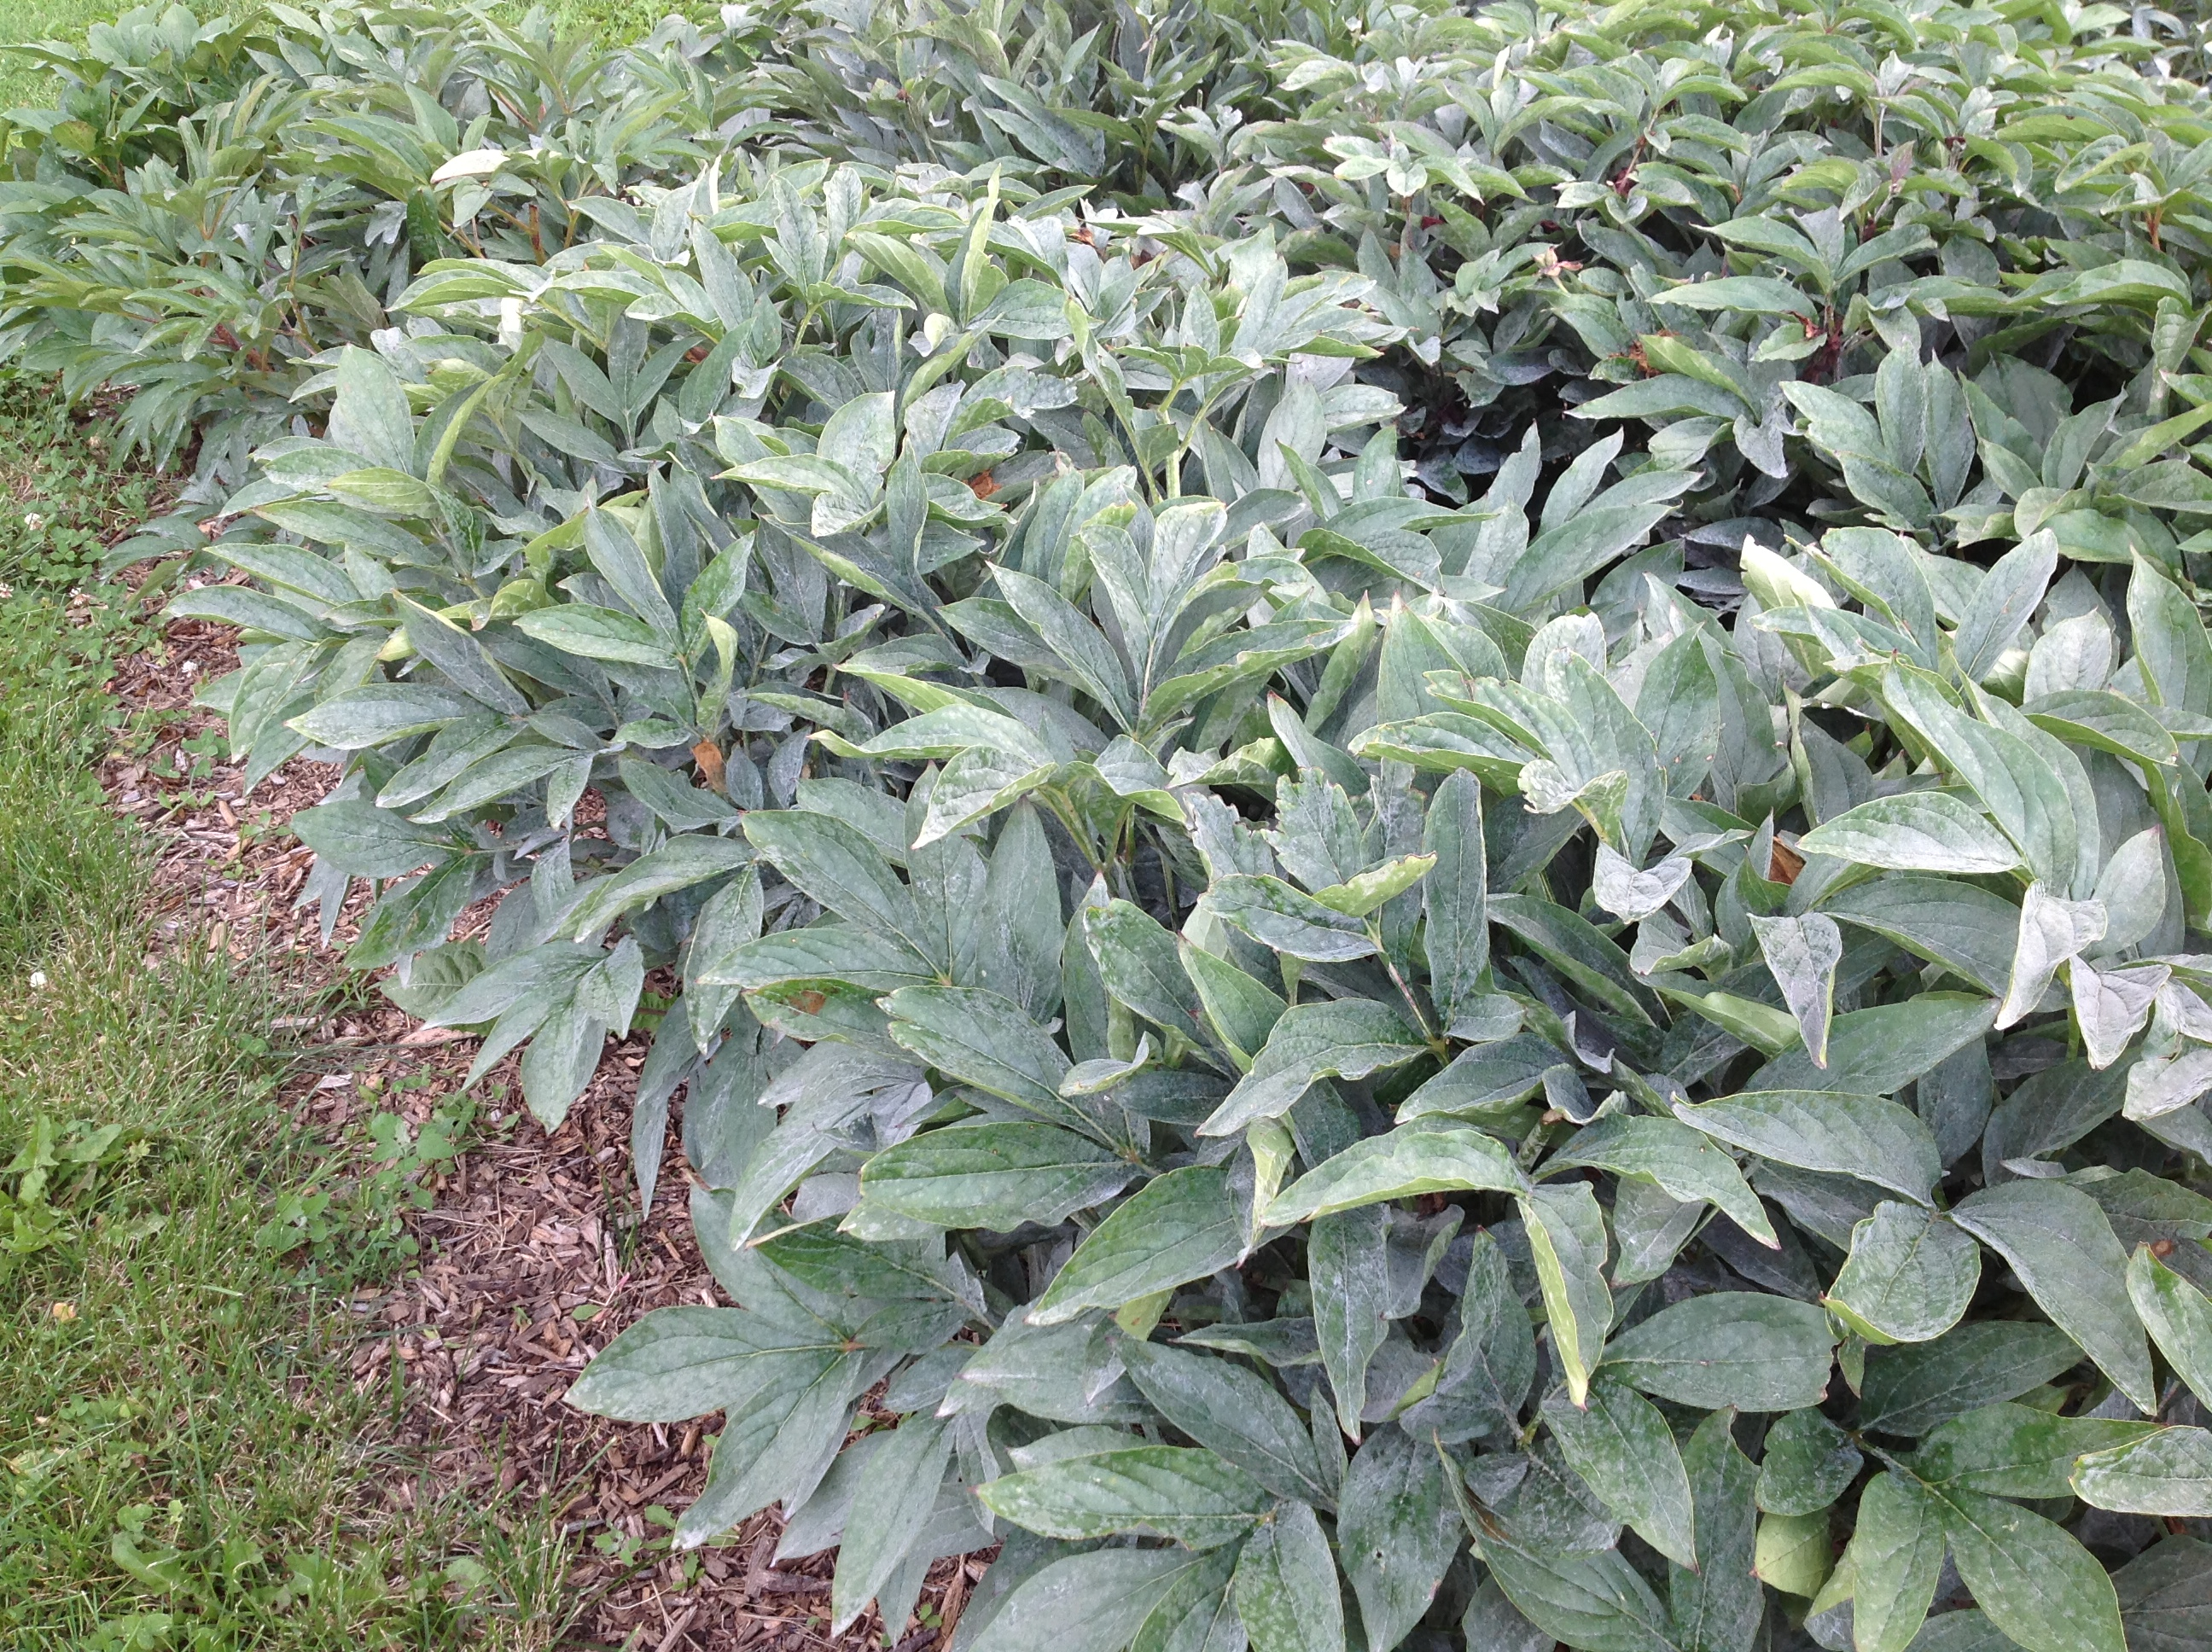 Comparing And Contrasting Powdery Mildew From Downy